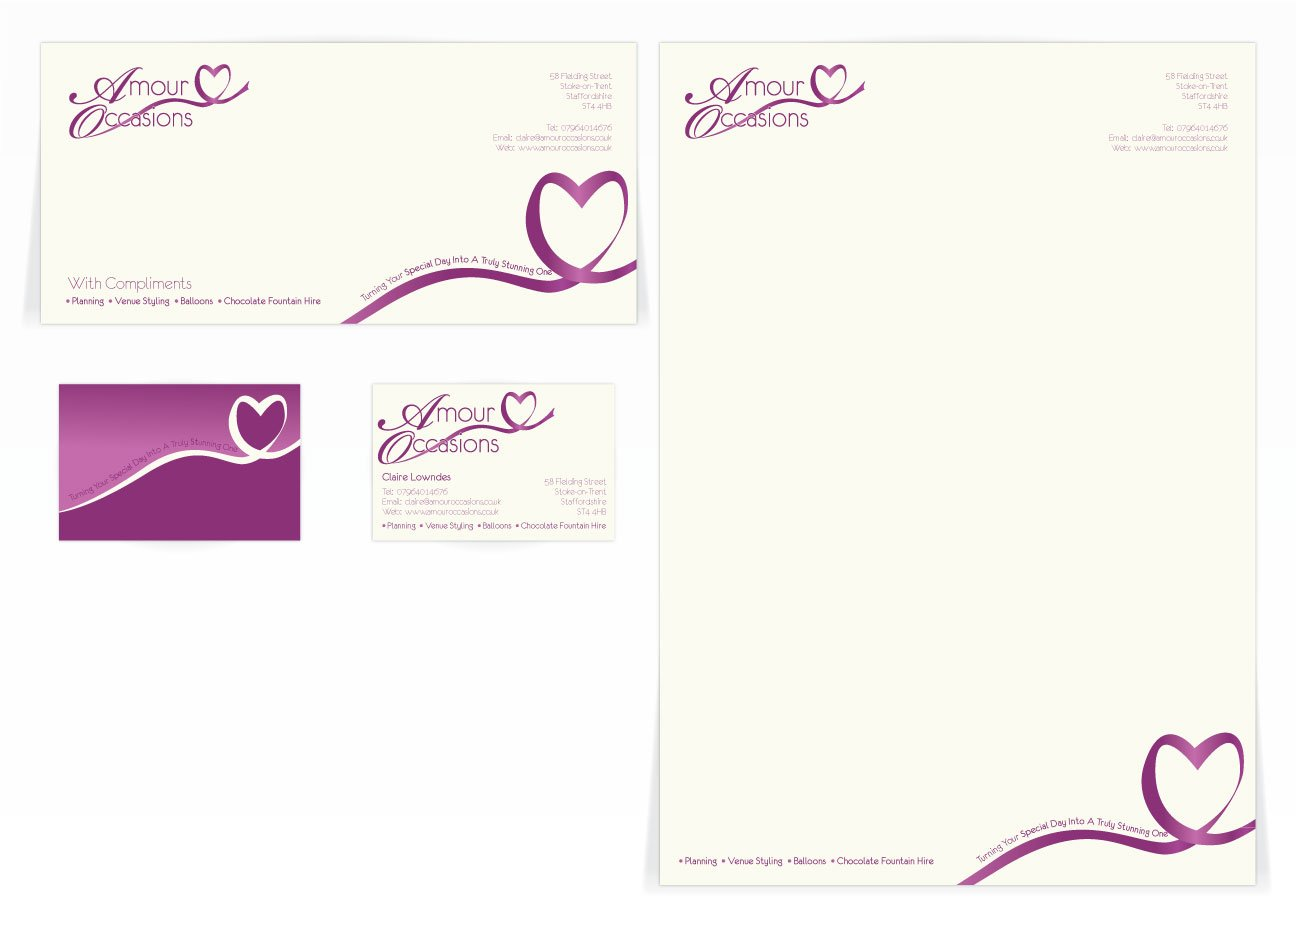 A compliment slip, letterhead and front and back business card design for Amour Occasions. Designed by am:pm graphics.